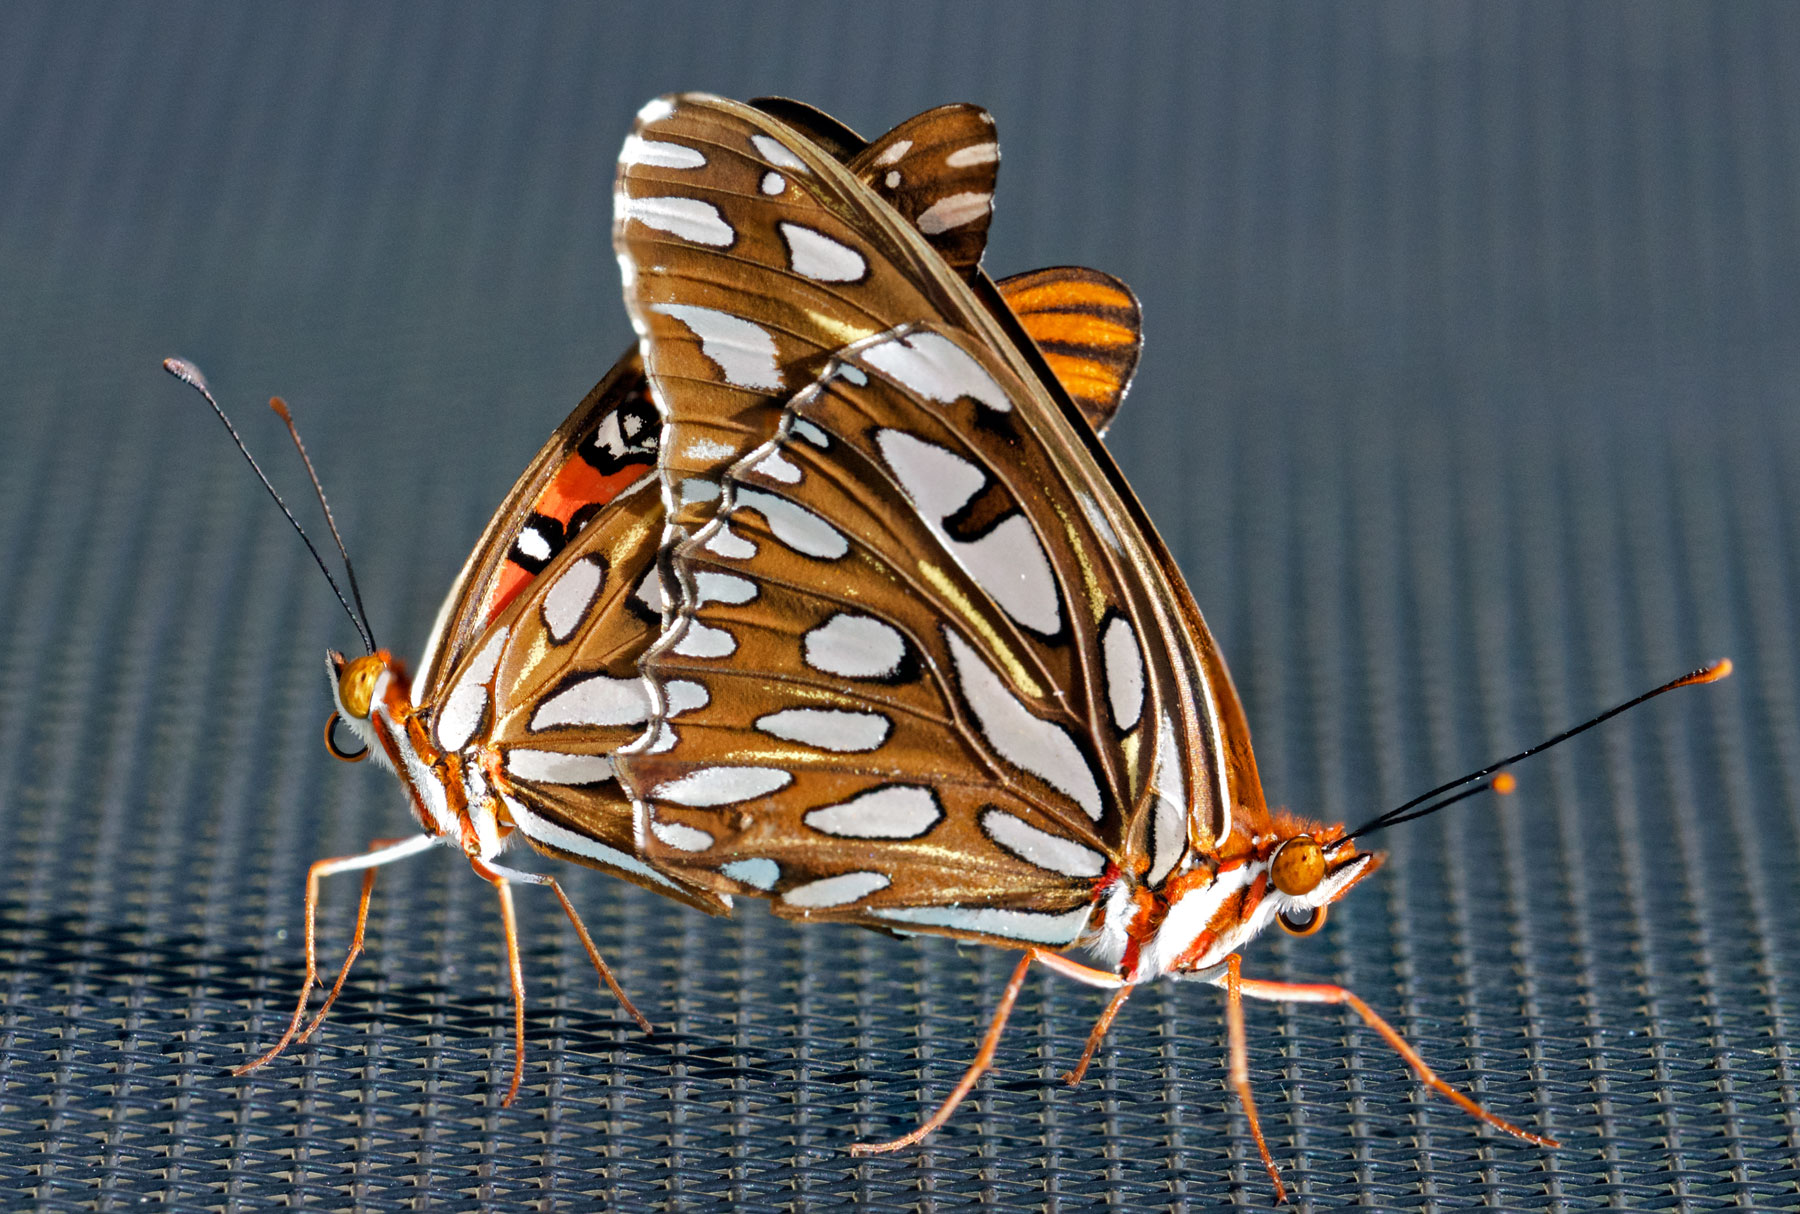 Gulf Fritillaries (<em>Agraulis vanillae</em>) fulfilling their genetic imperative. Boca Raton, FL, September 15, 2015.